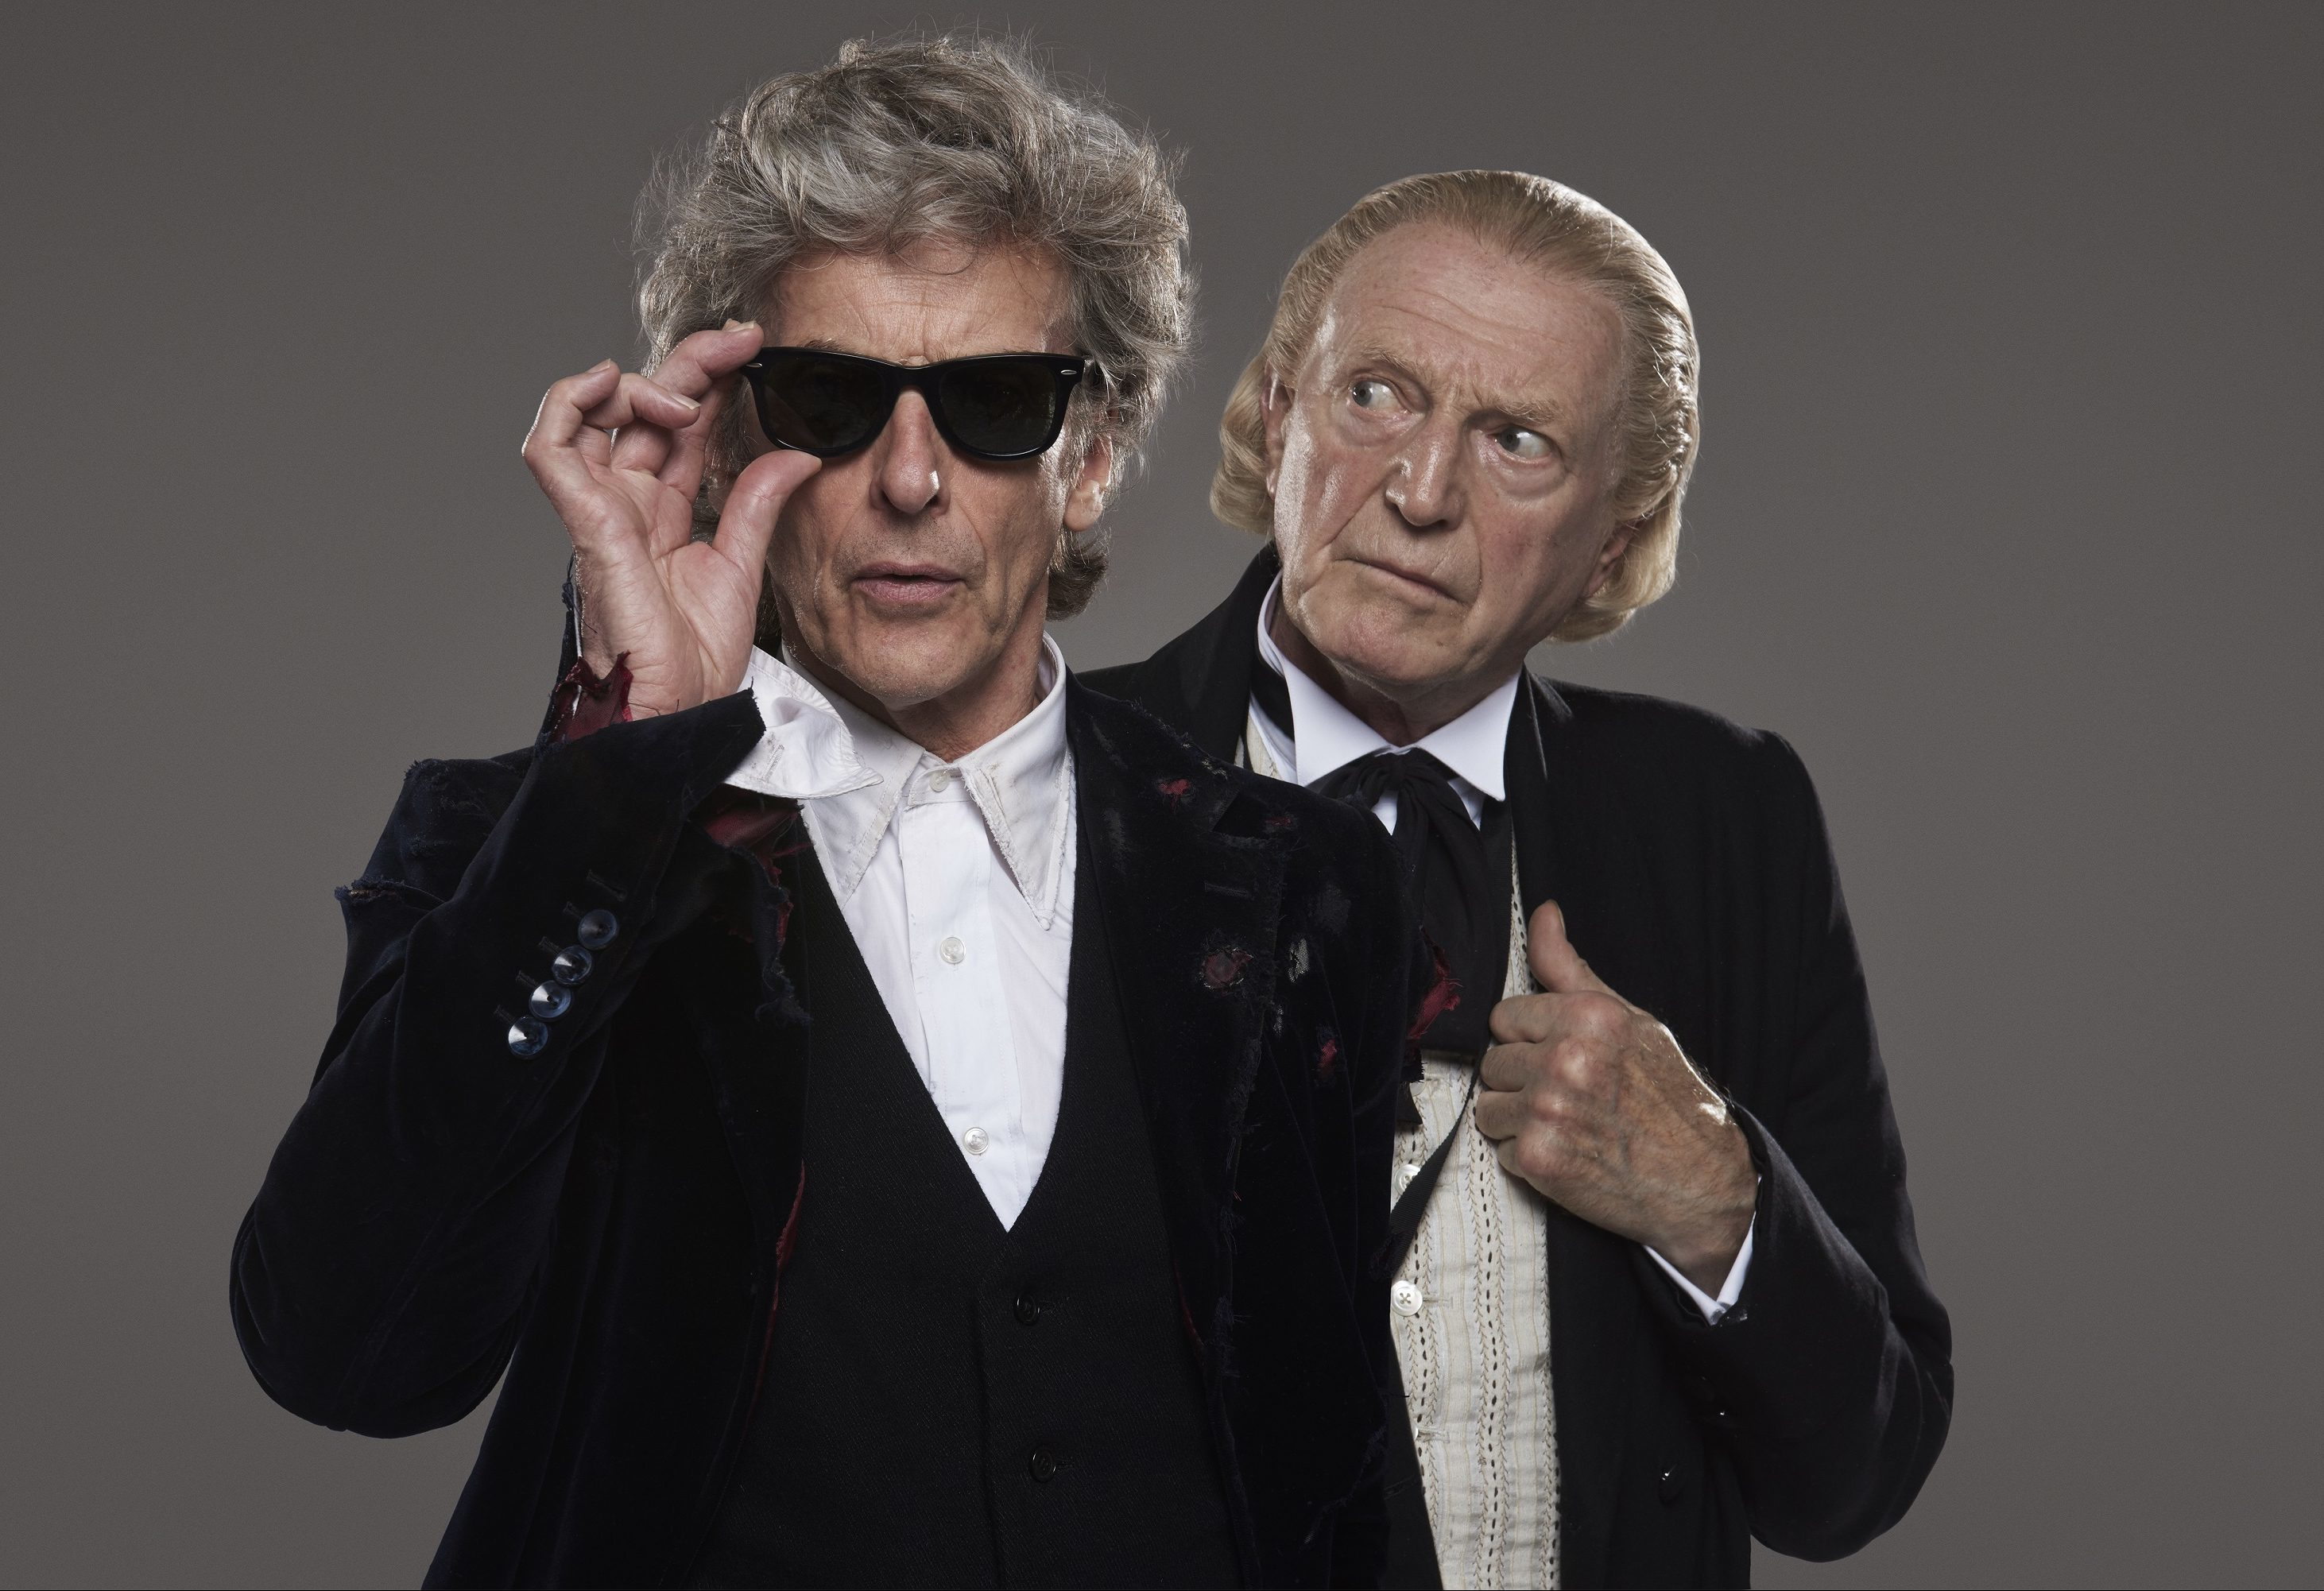 Dr Who Christmas Special.First Images Released From Doctor Who Christmas Special